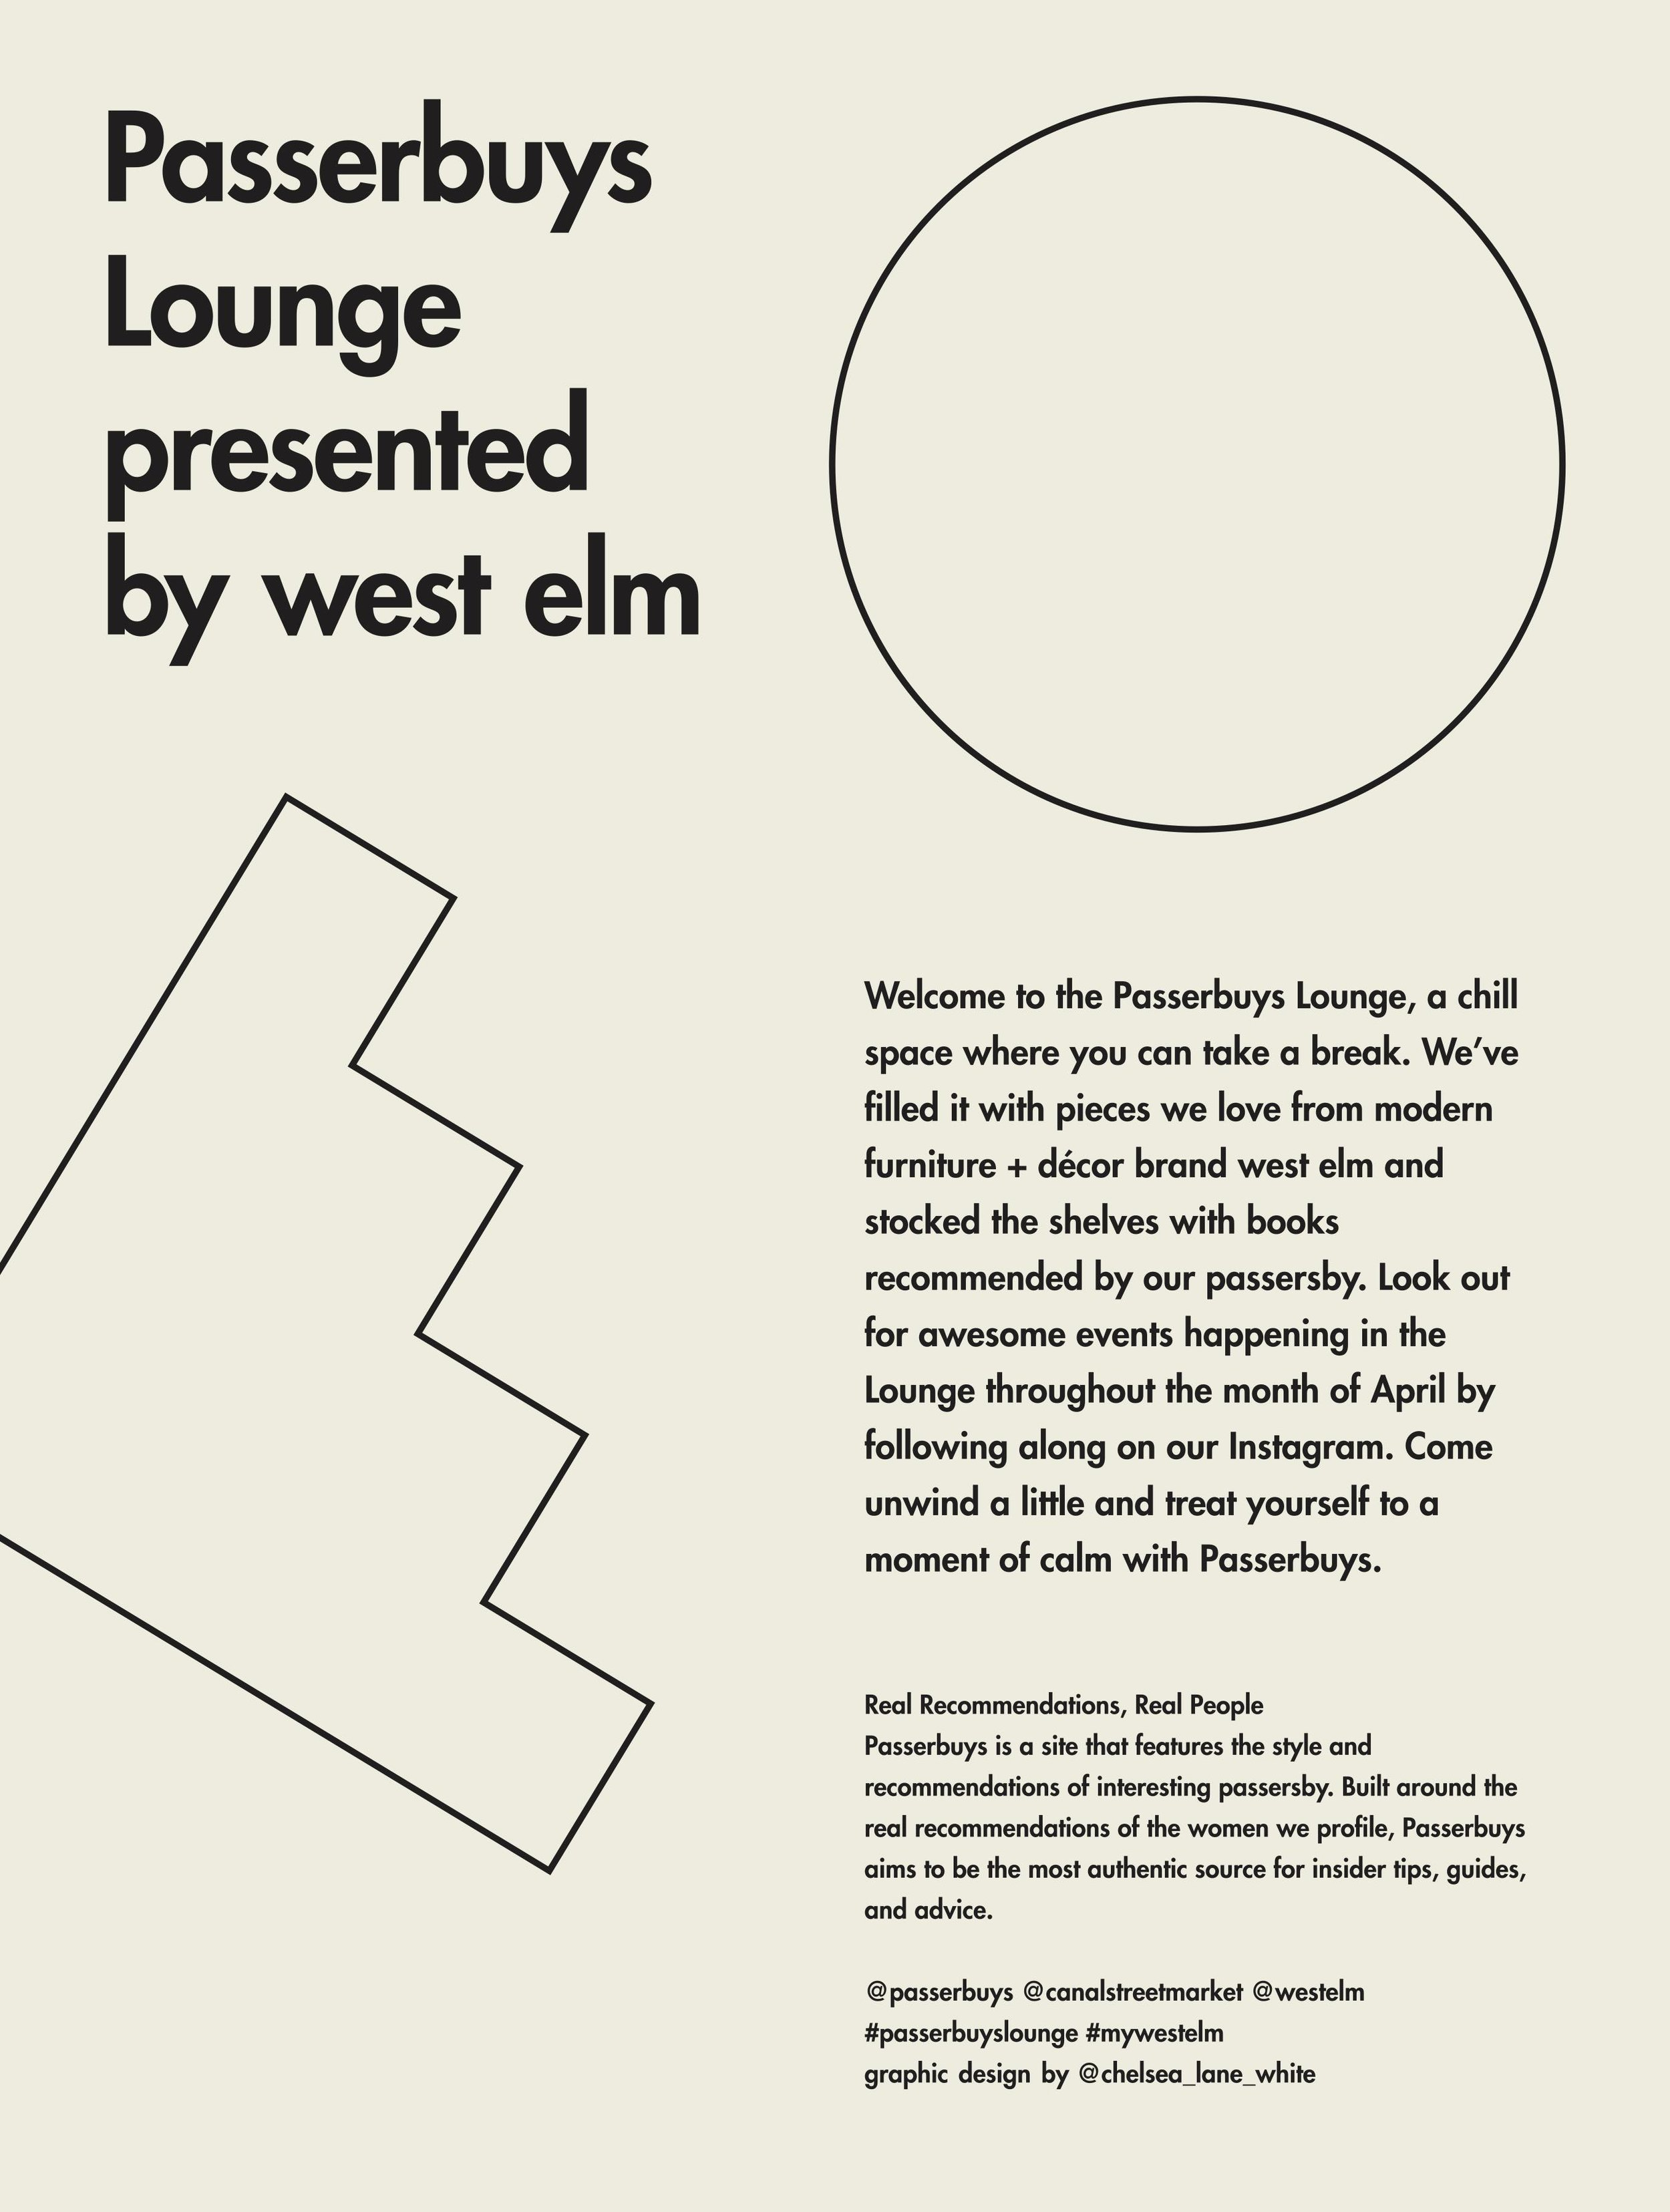 Passerbuys Lounge Presented by West Elm